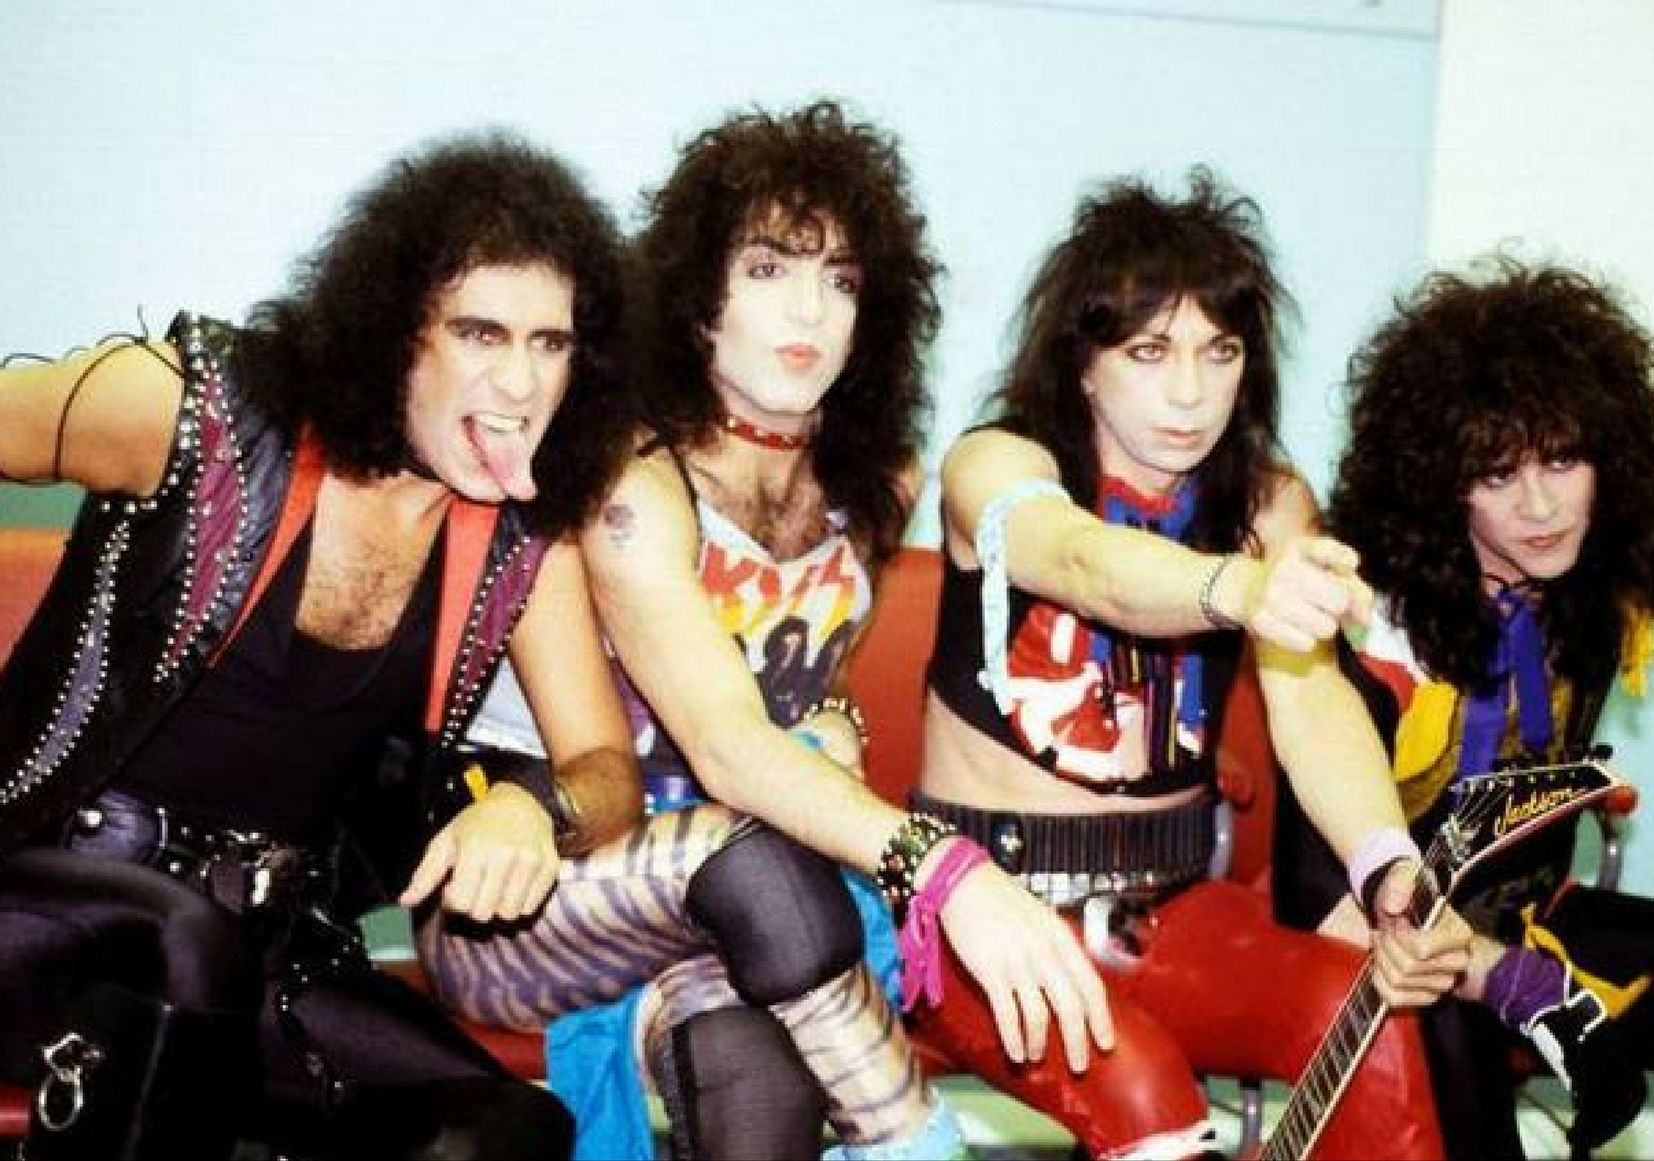 Related Image Eric Carr Hot Band Kiss Without Makeup